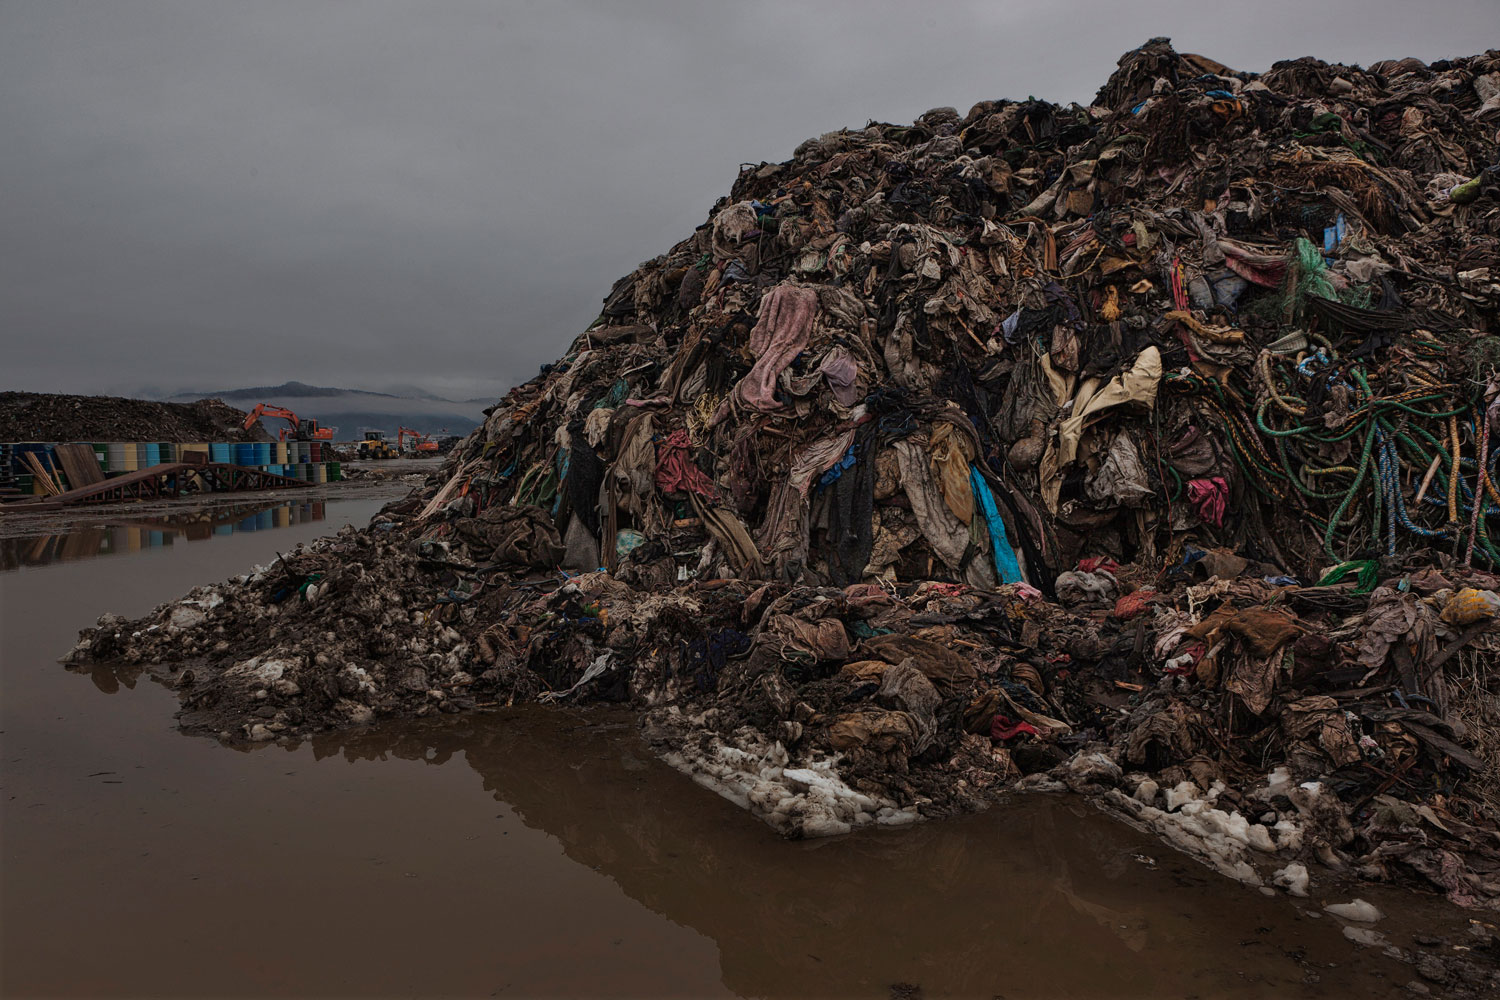 Feb. 23, 2012. Rikuzentakata, Japan. Mountains of clothes and household textiles that cannot be recycled.